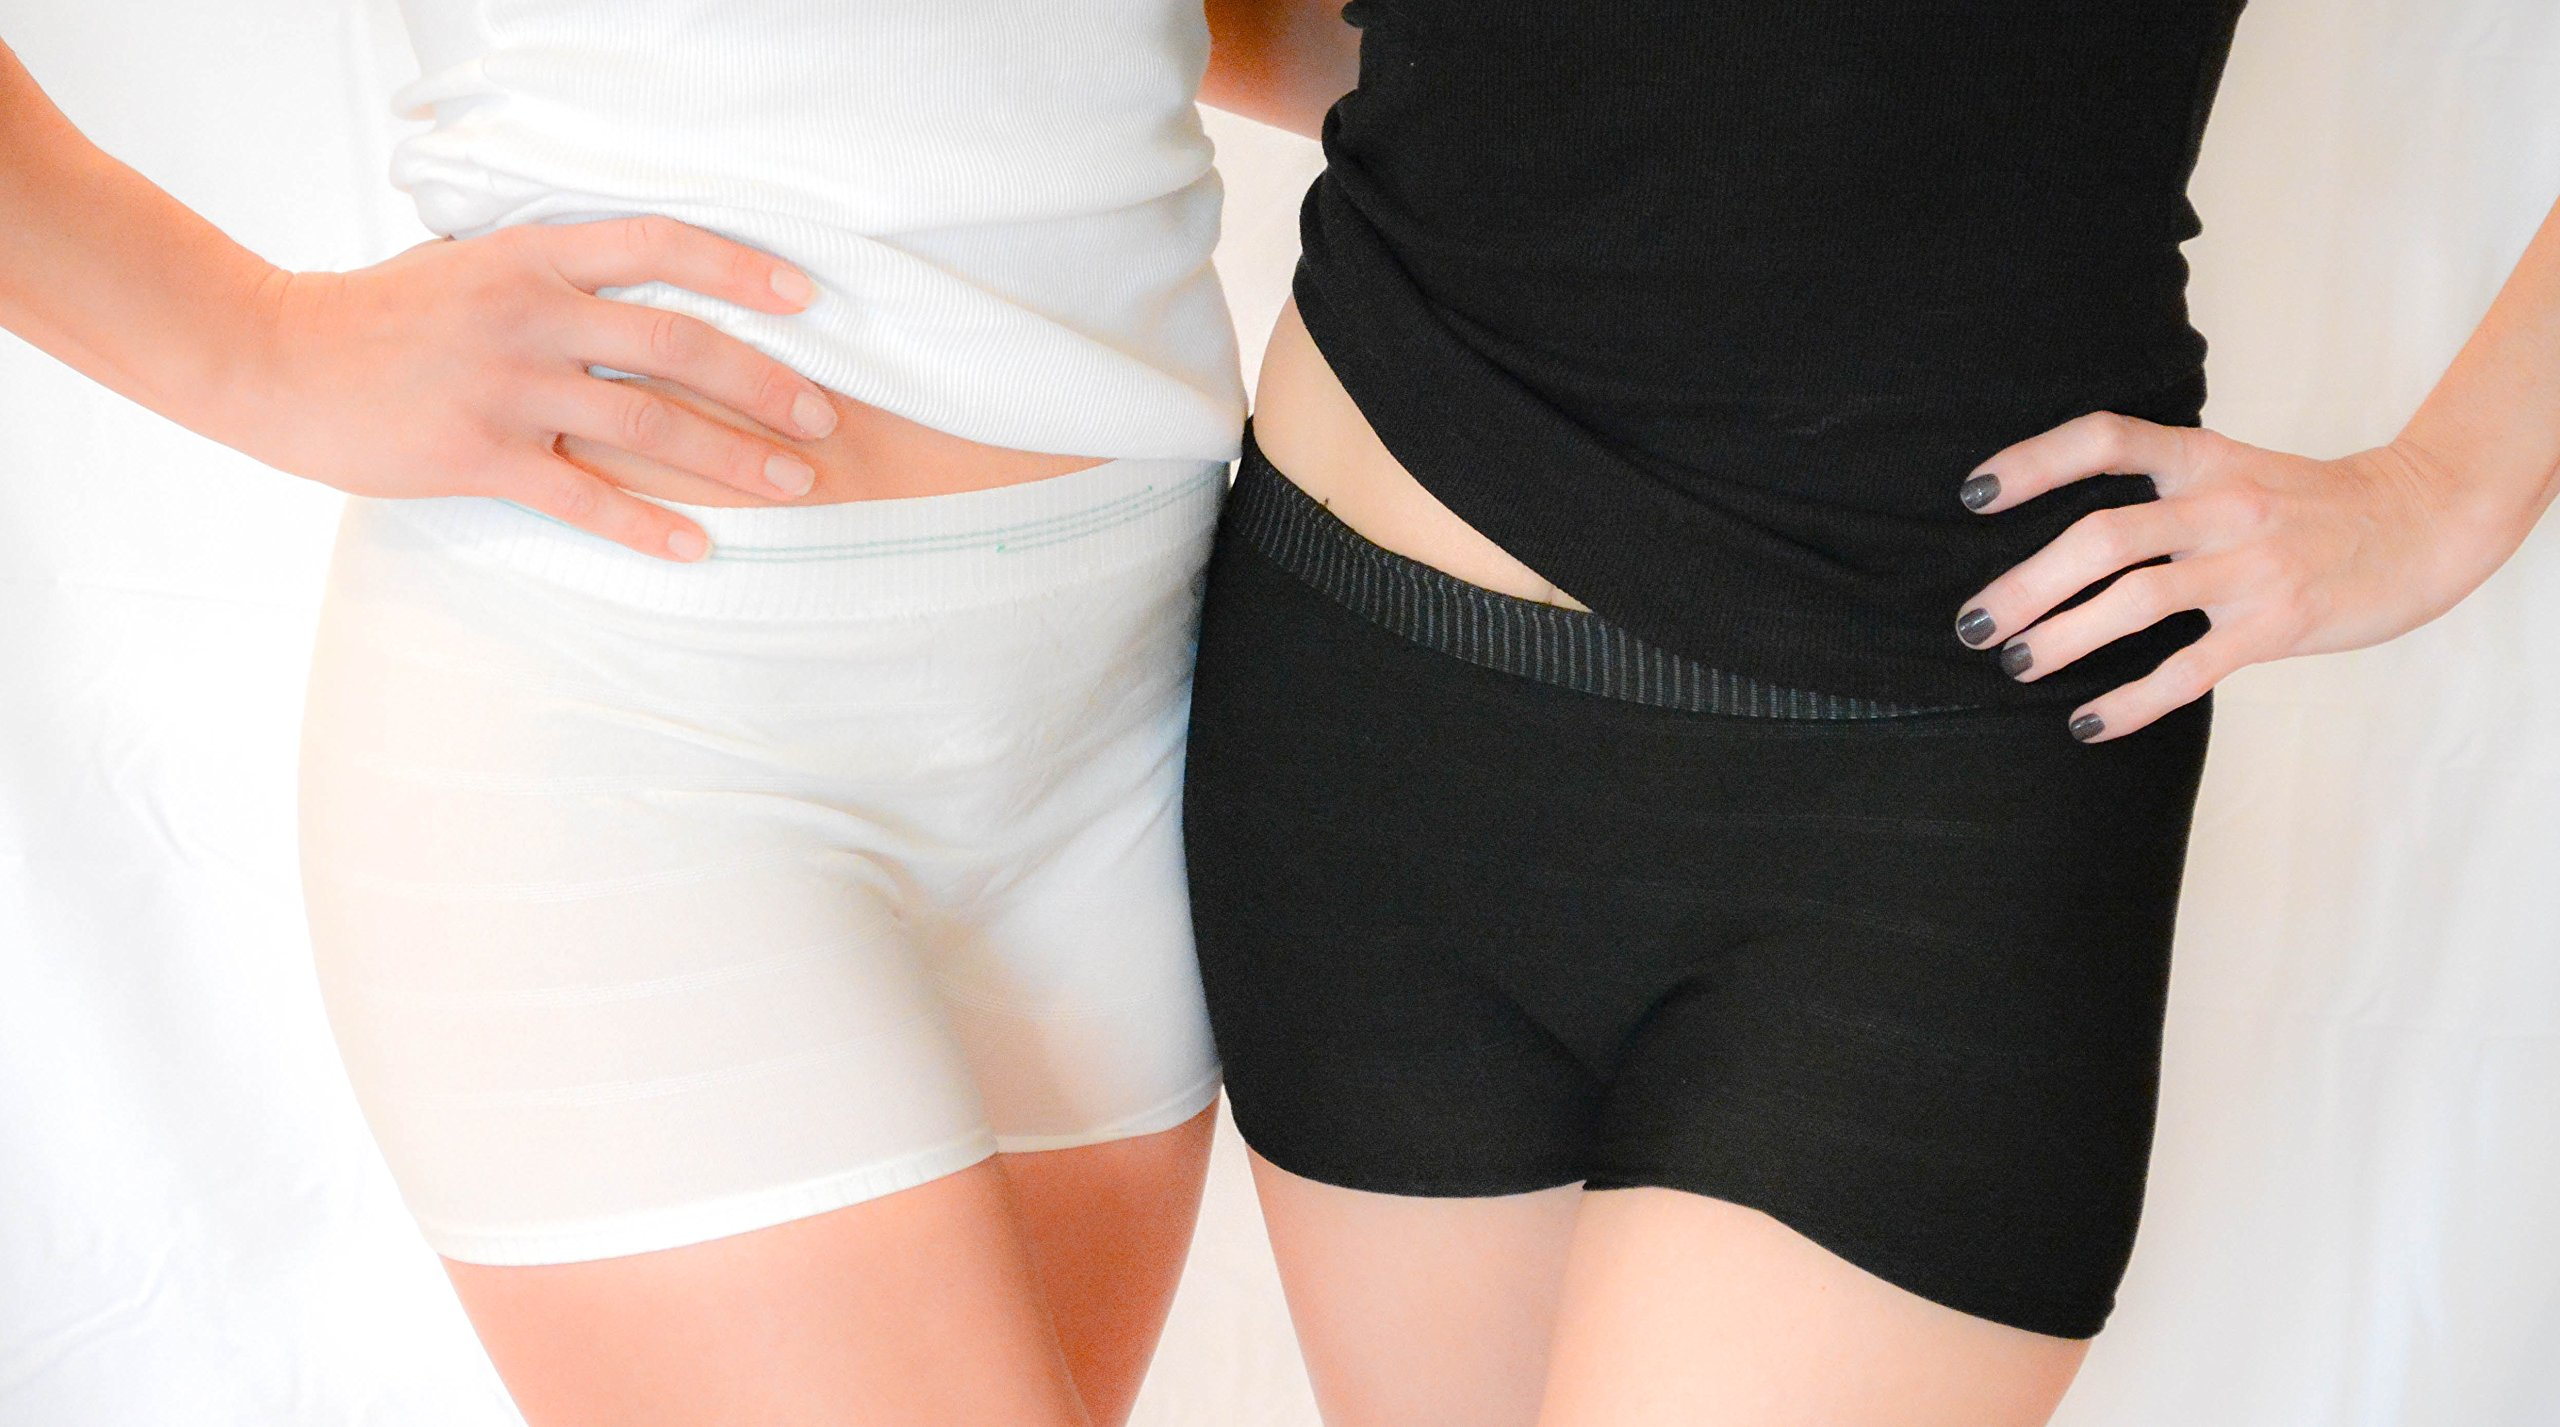 Brief Transitions Seamless Mesh Postpartum, Post Surgical, Disposable Underwear & C-Section Recovery Women's Panties